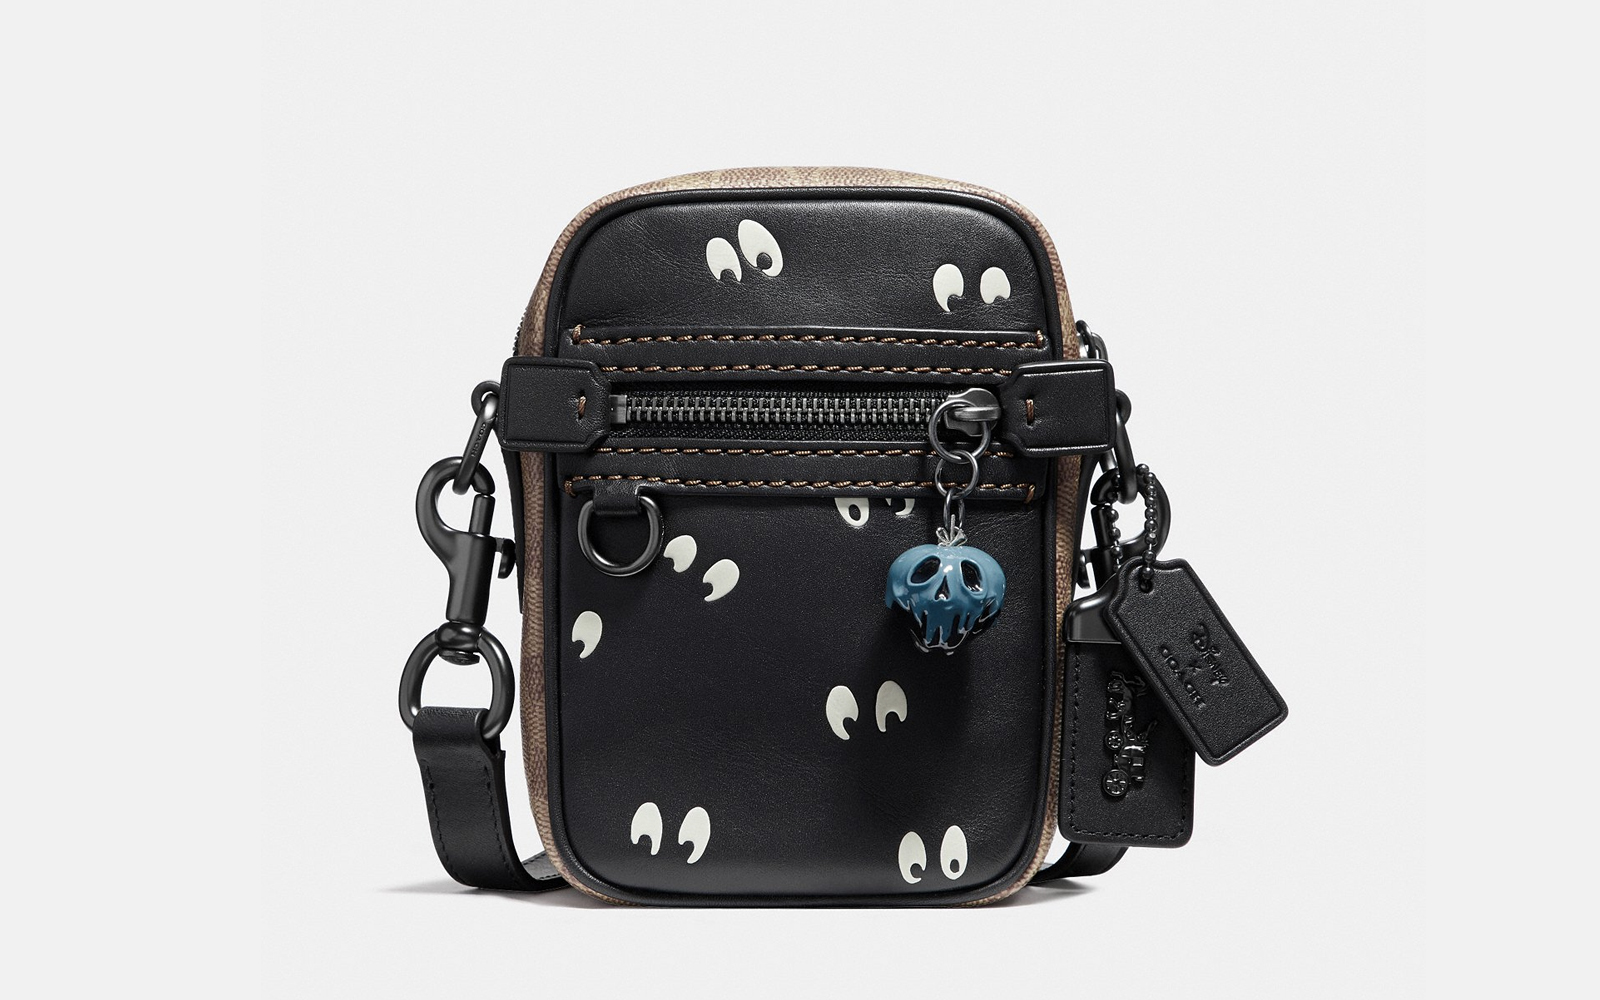 Coach x Disney Dark Fairytale